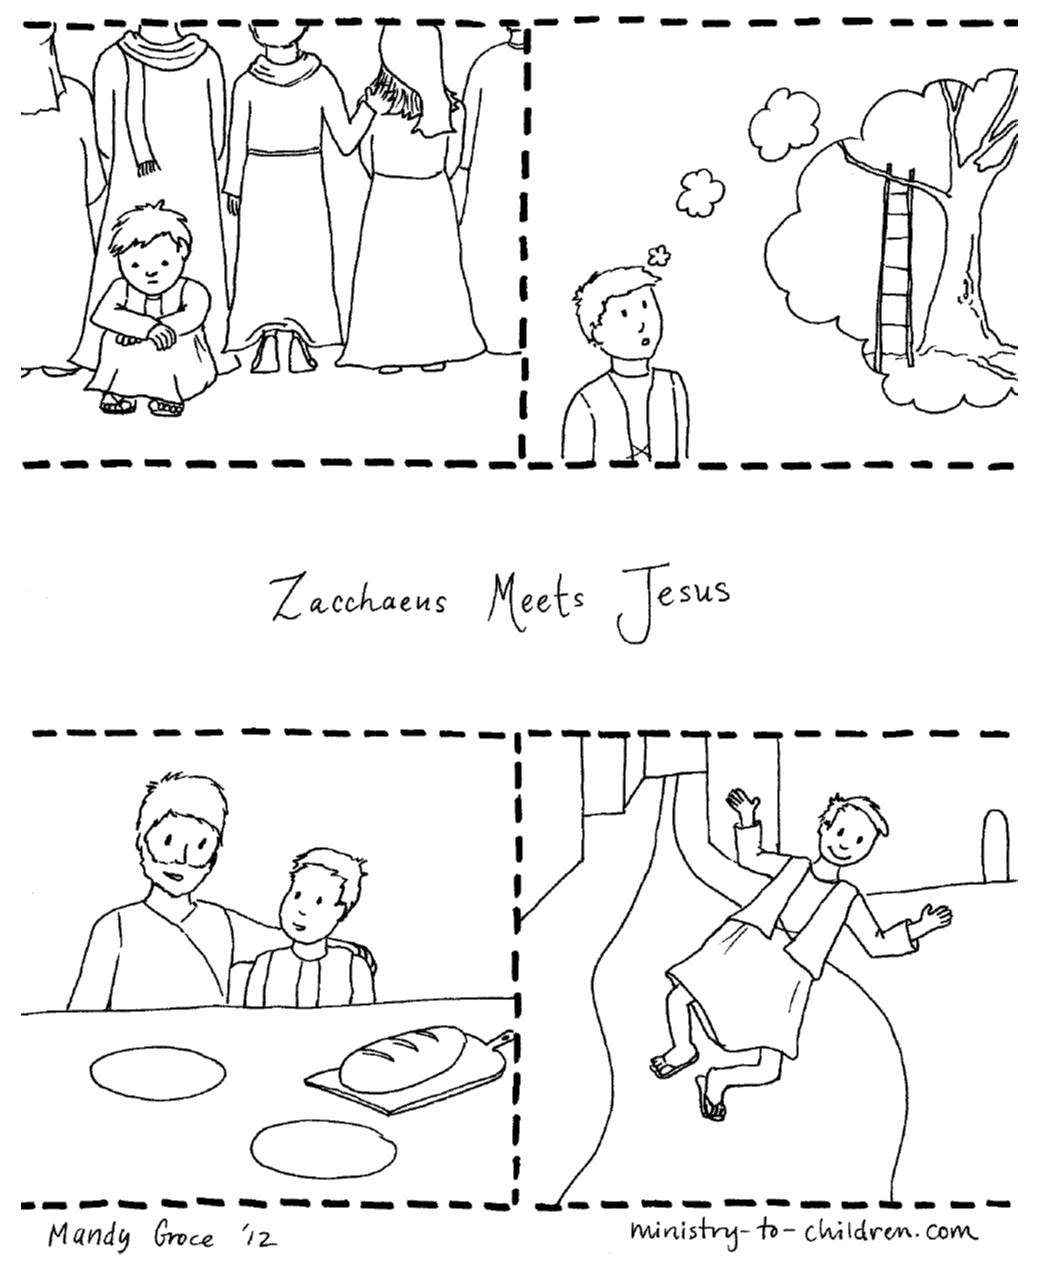 Childrens bible stories and coloring pages - Zacchaeus Meets Jesus Coloring Page Story Sequence Activity For Letter Z